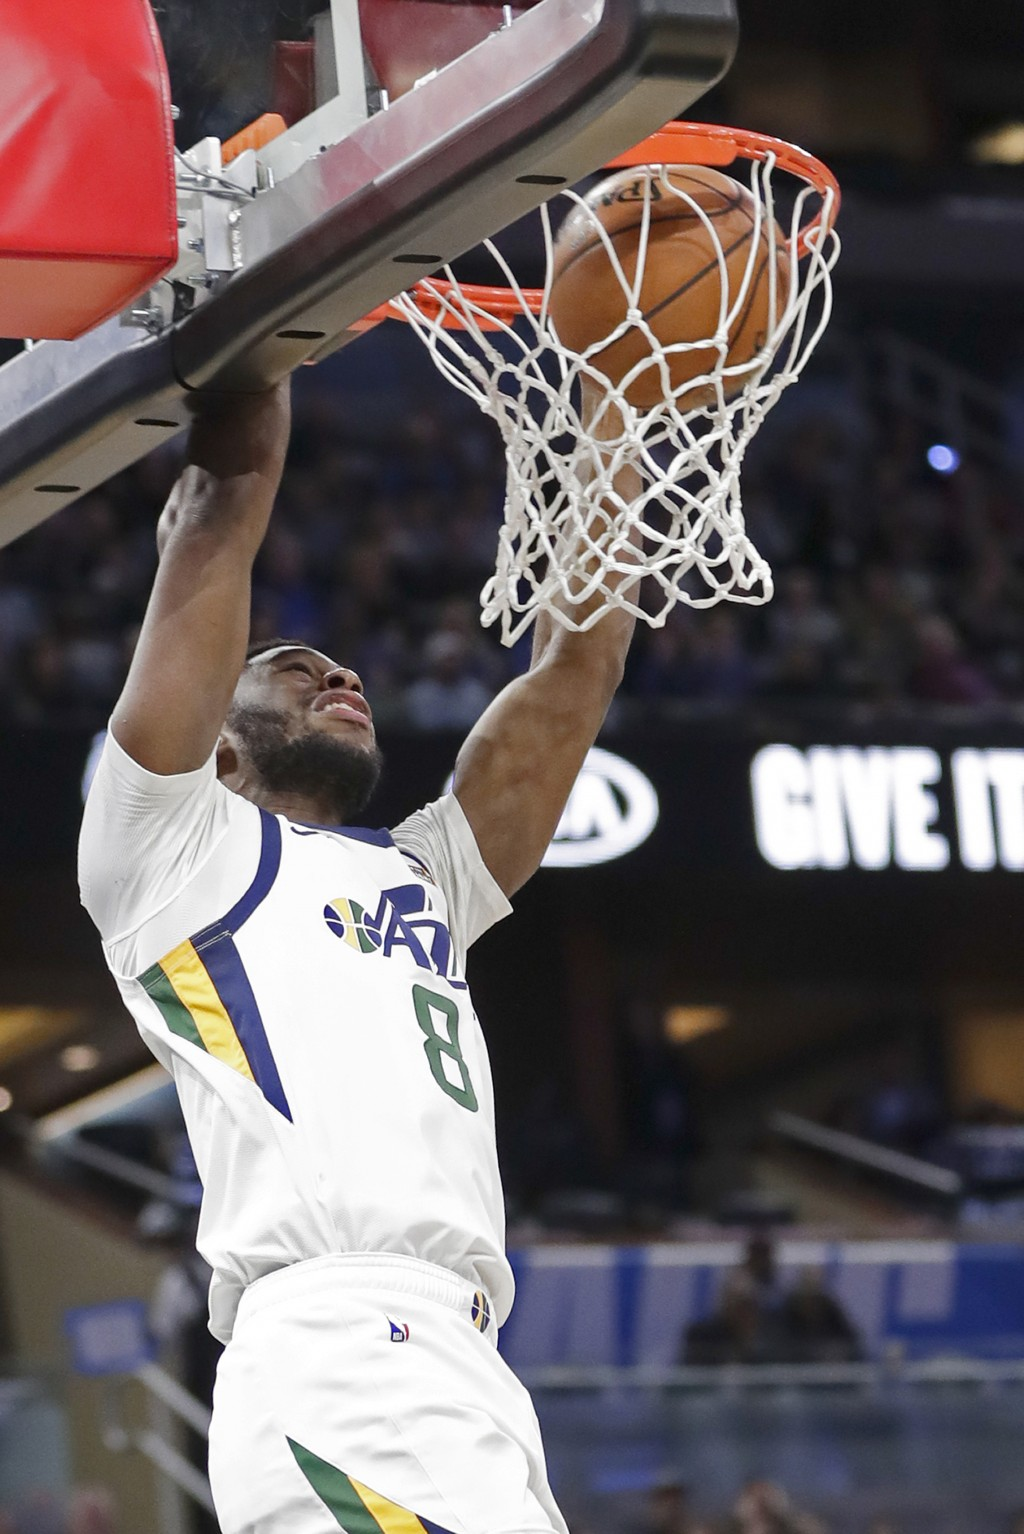 Utah Jazz guard Emmanuel Mudiay dunks the ball during the second half of an NBA basketball game against the Orlando Magic, Saturday, Jan. 4, 2020, in ...